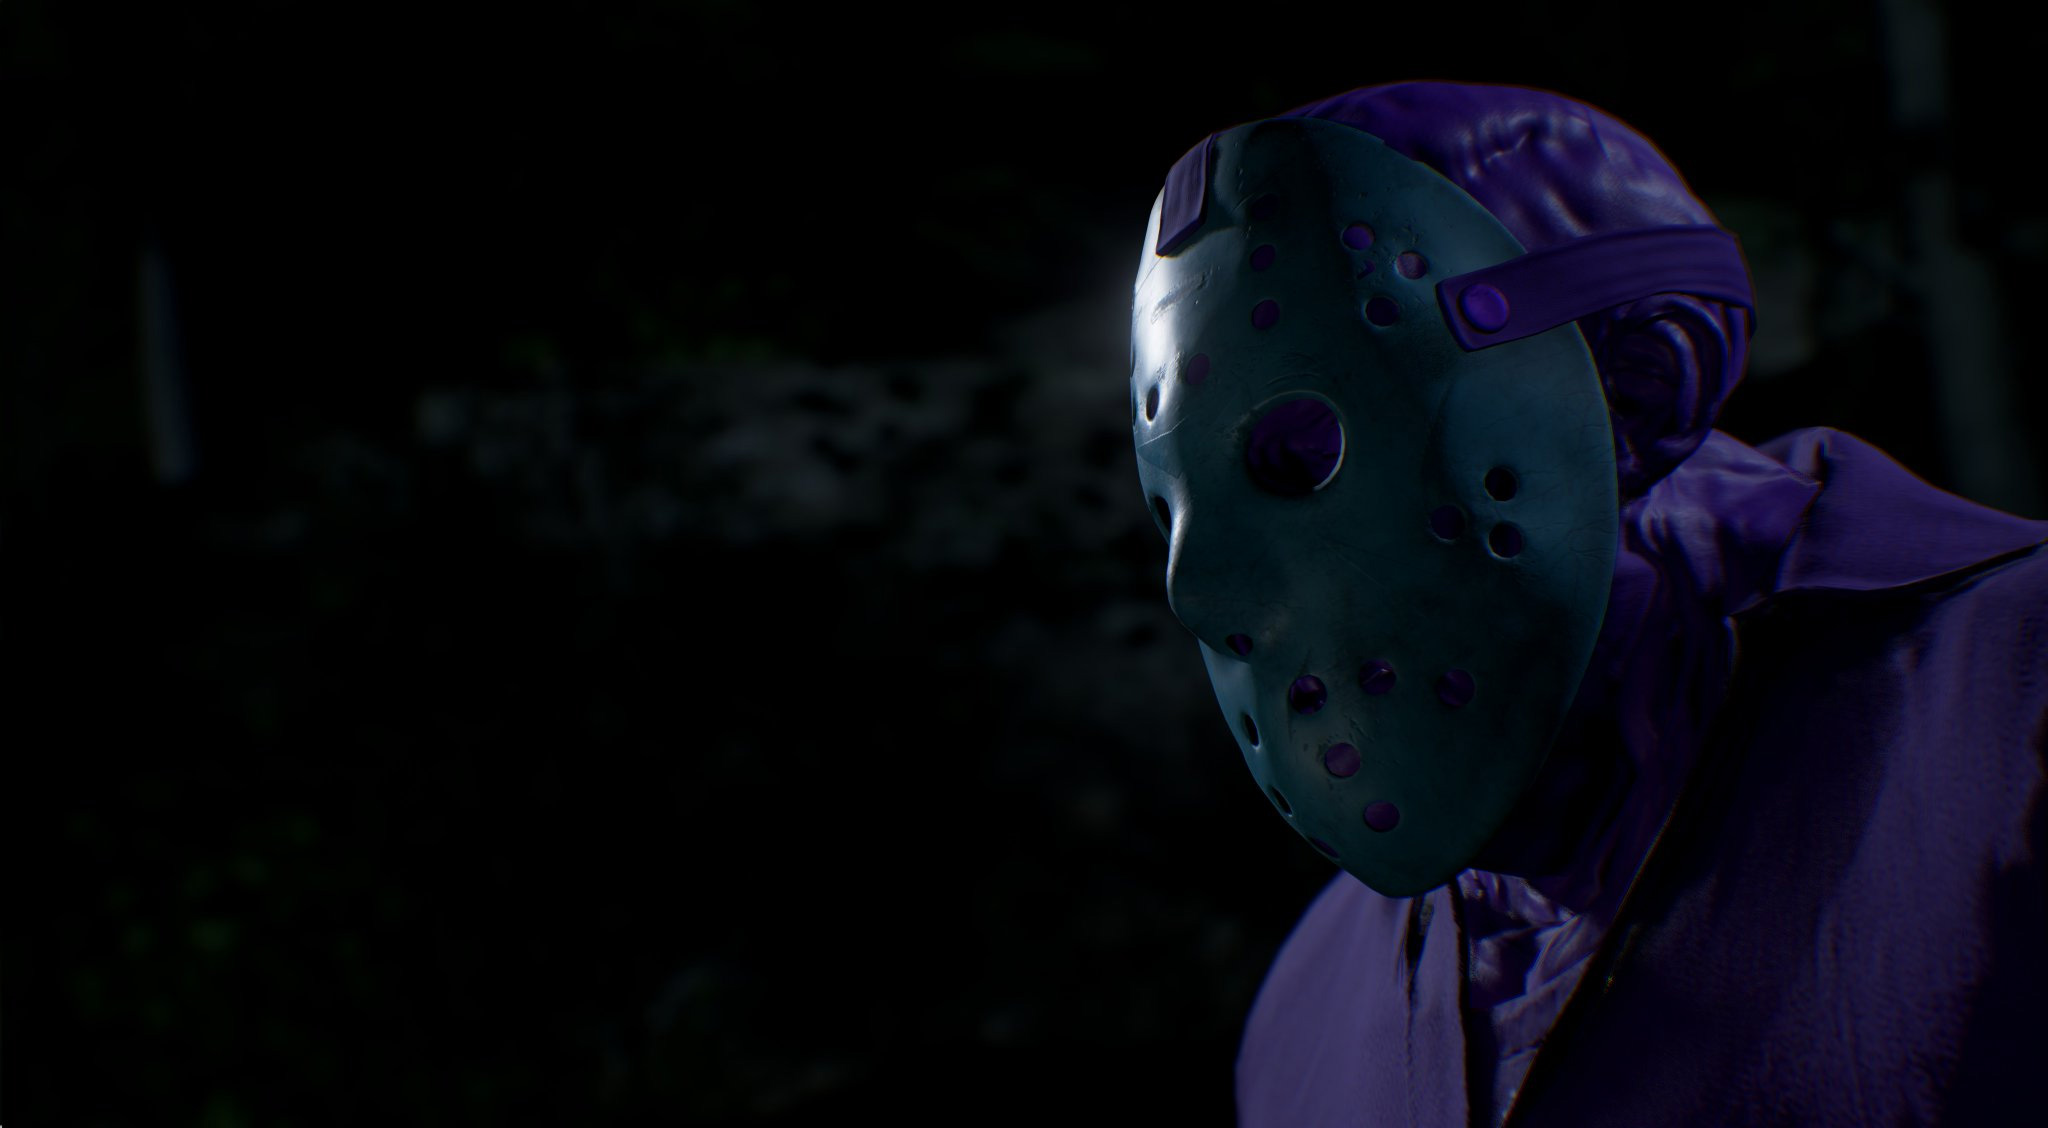 Friday the 13th has a wonderful throwback skin, and it's free screenshot